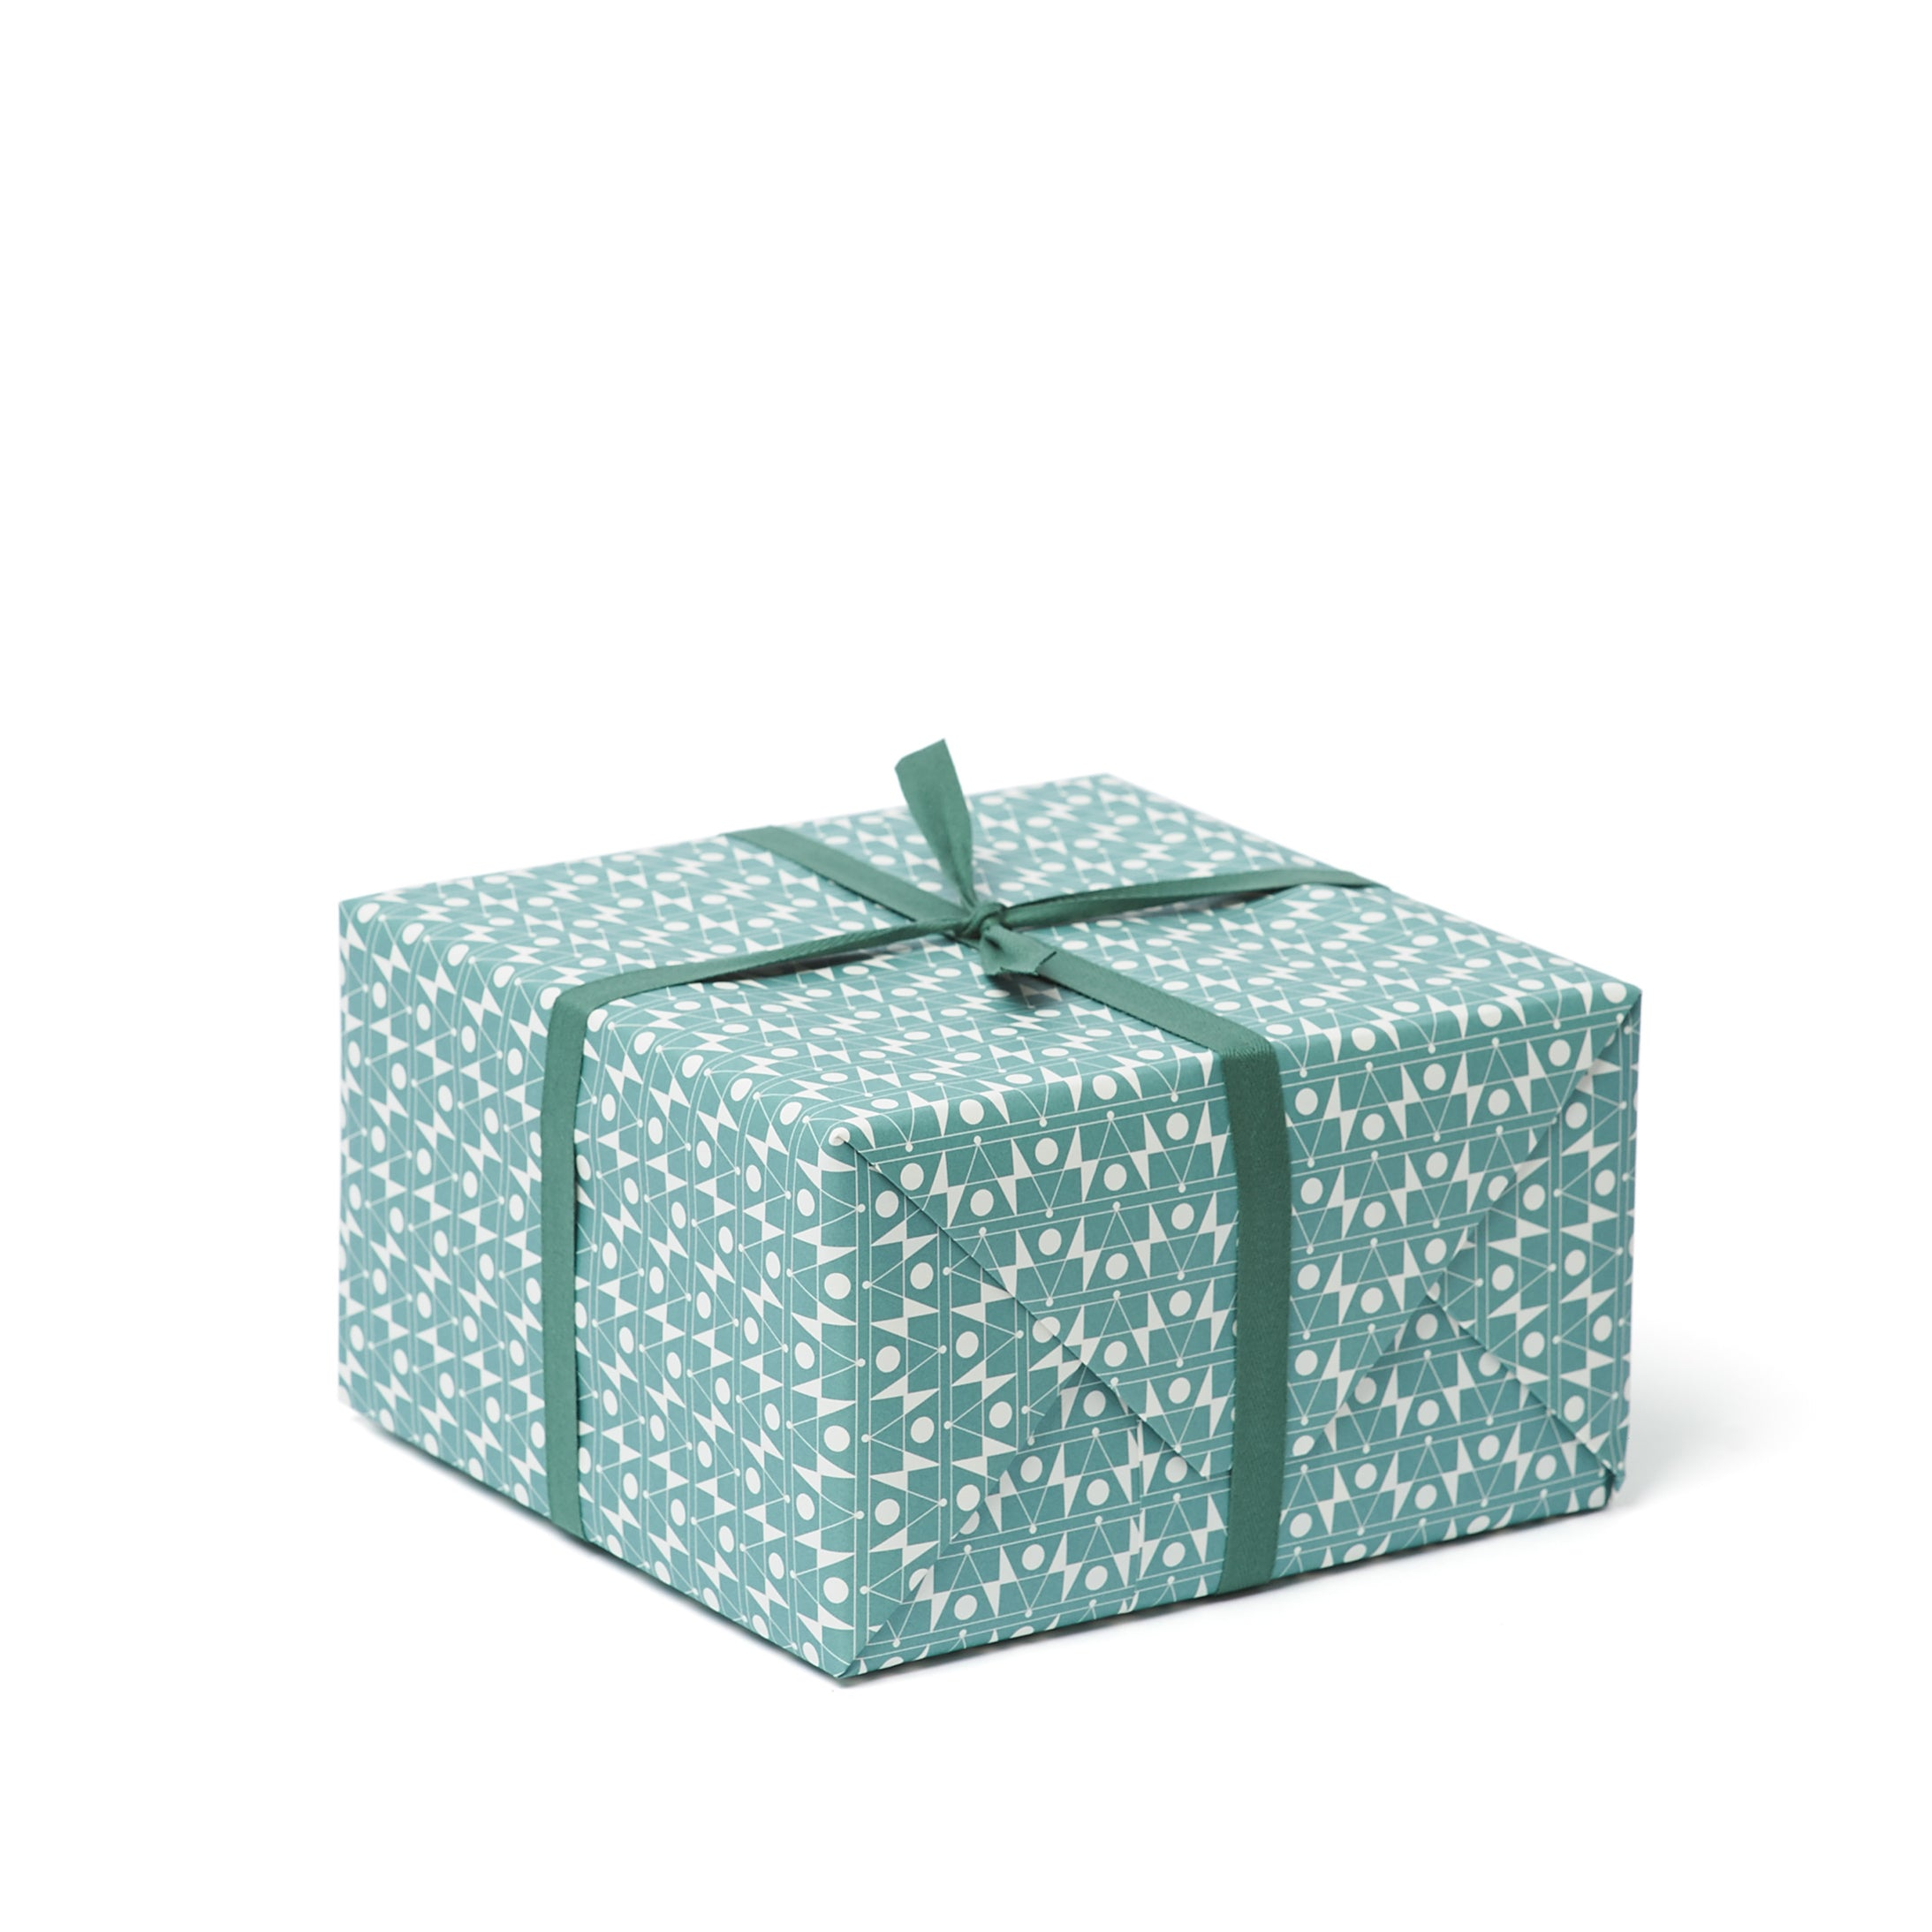 FREQUENCY Patterned Paper <br>Light Blue - Esme Winter